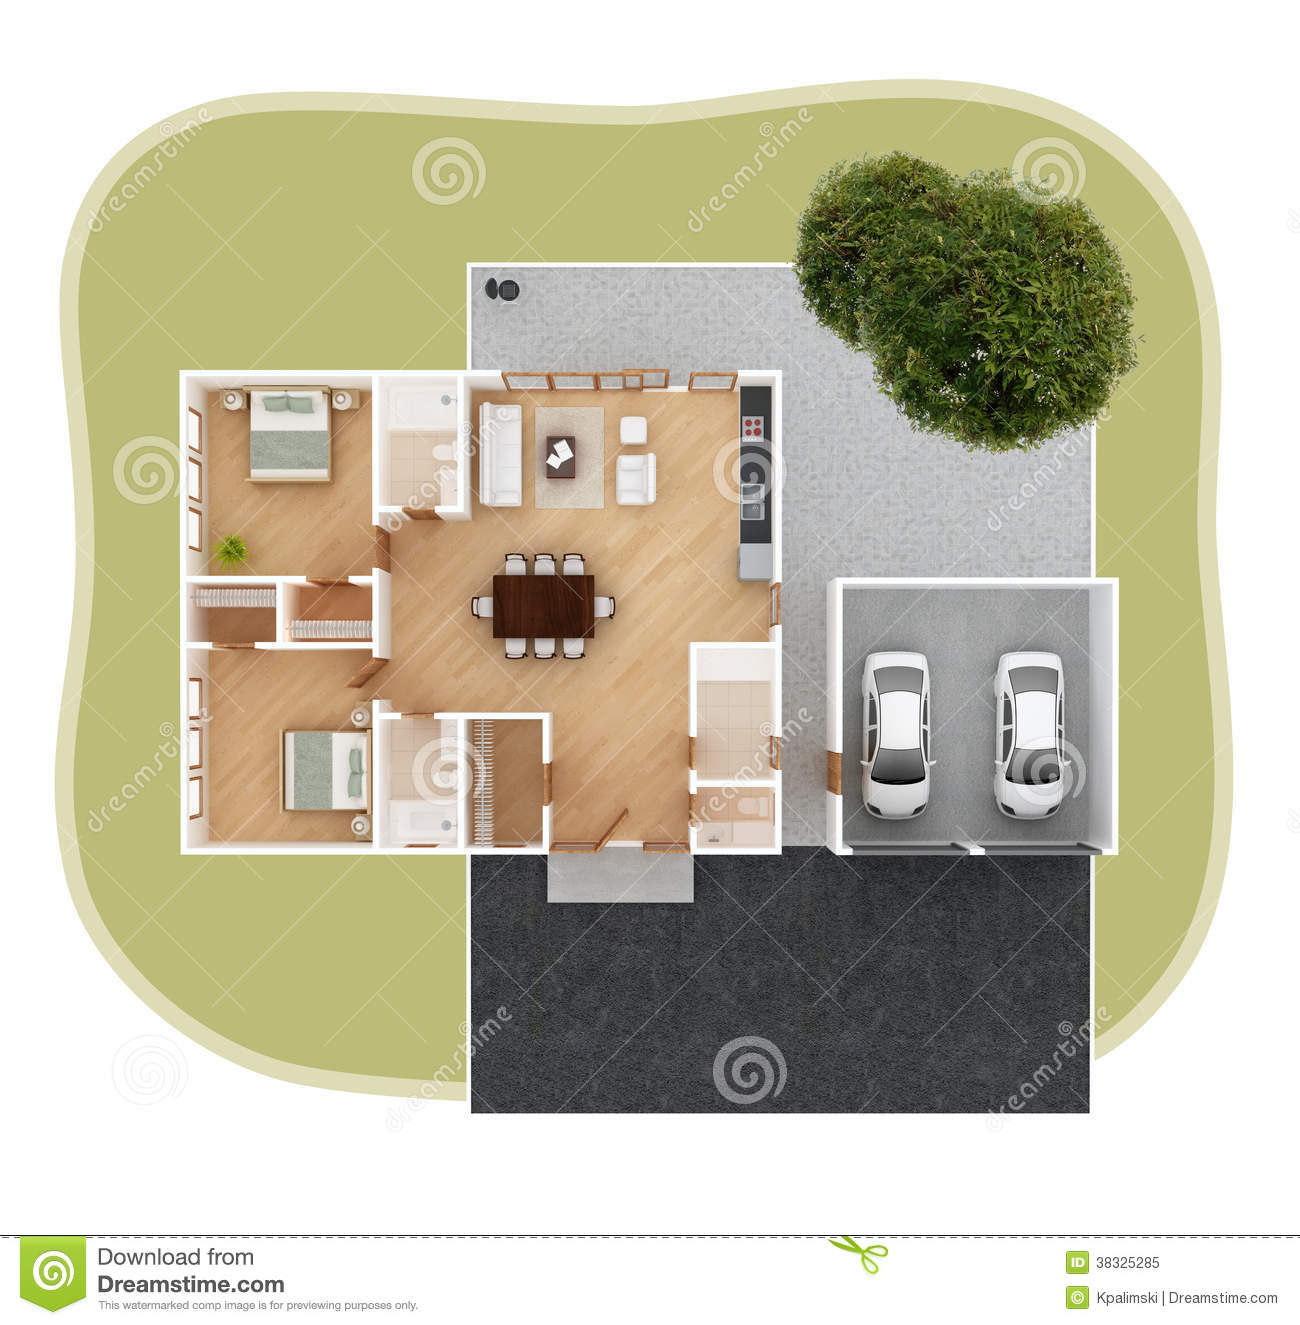 House Plan Top View Royalty Free Stock Photo Image 38325285